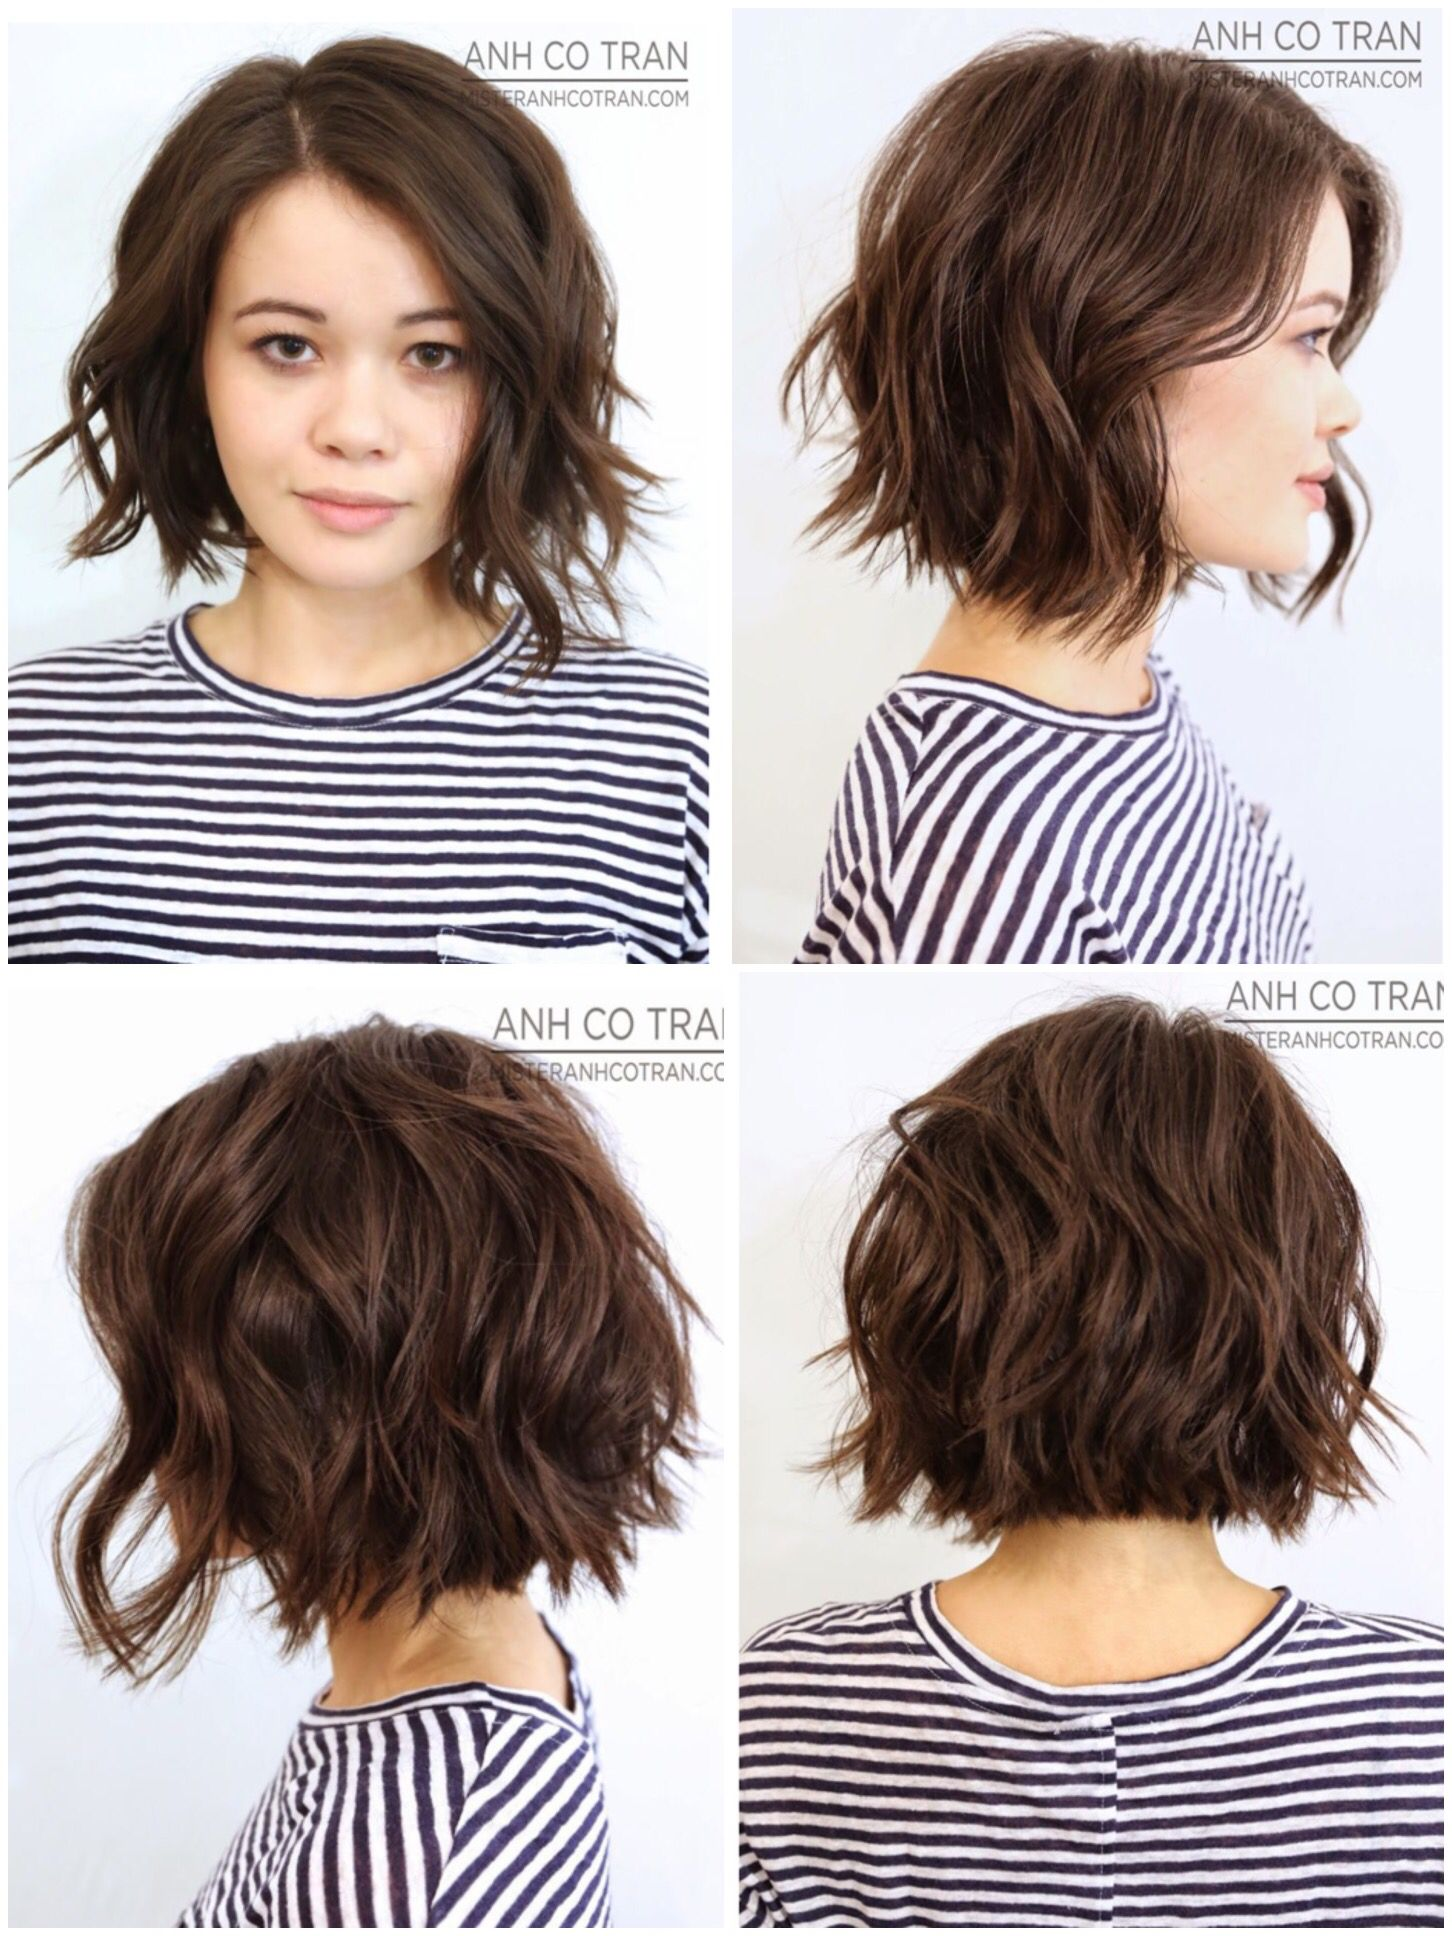 360 view of great classic bob gone messy | hairstyles to try